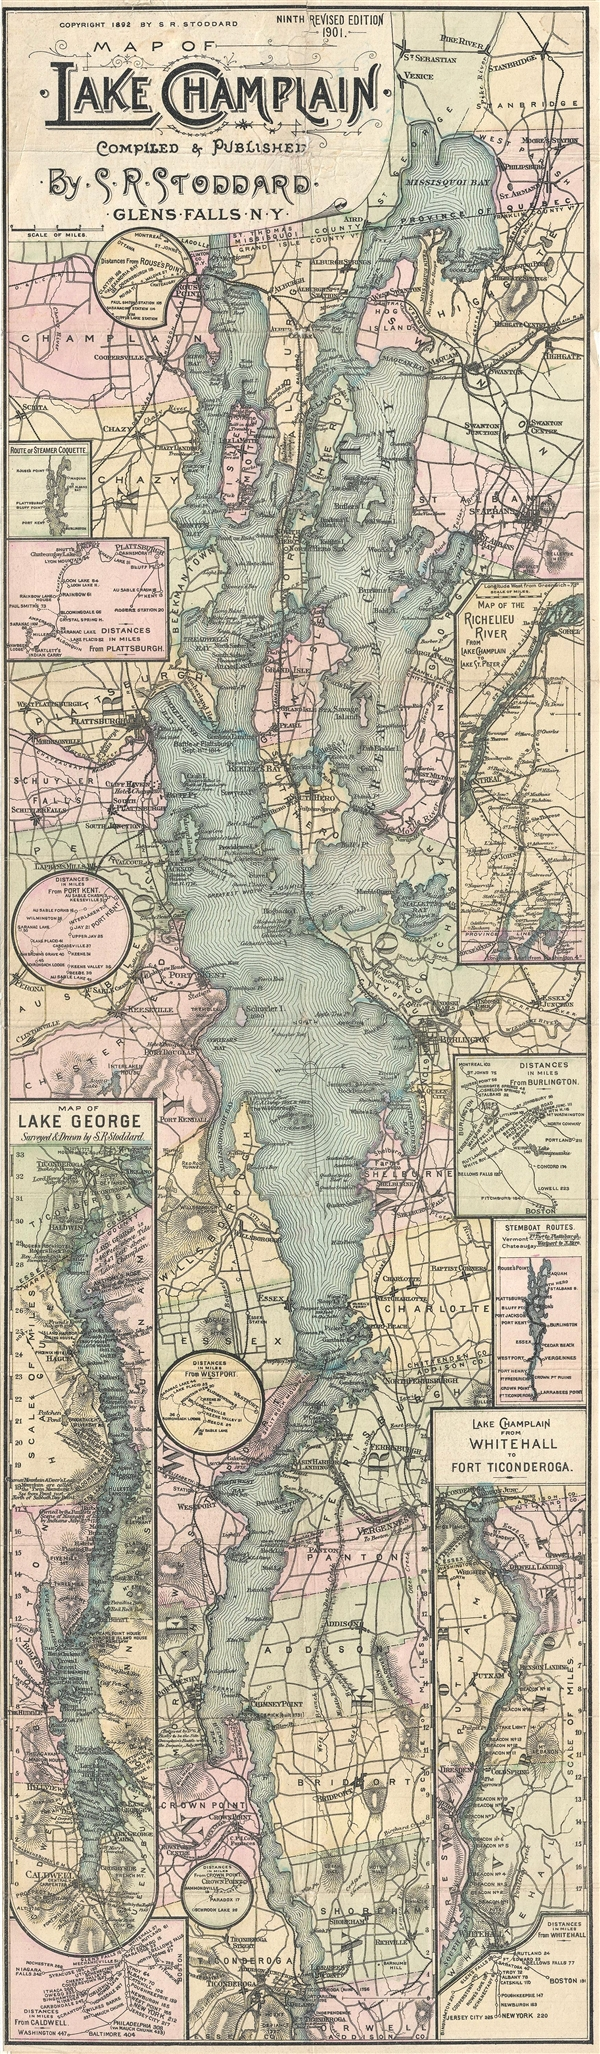 Map of Lake Champlain.  Compiled & Published by S. R. Stoddard.  Glens Falss, NY.